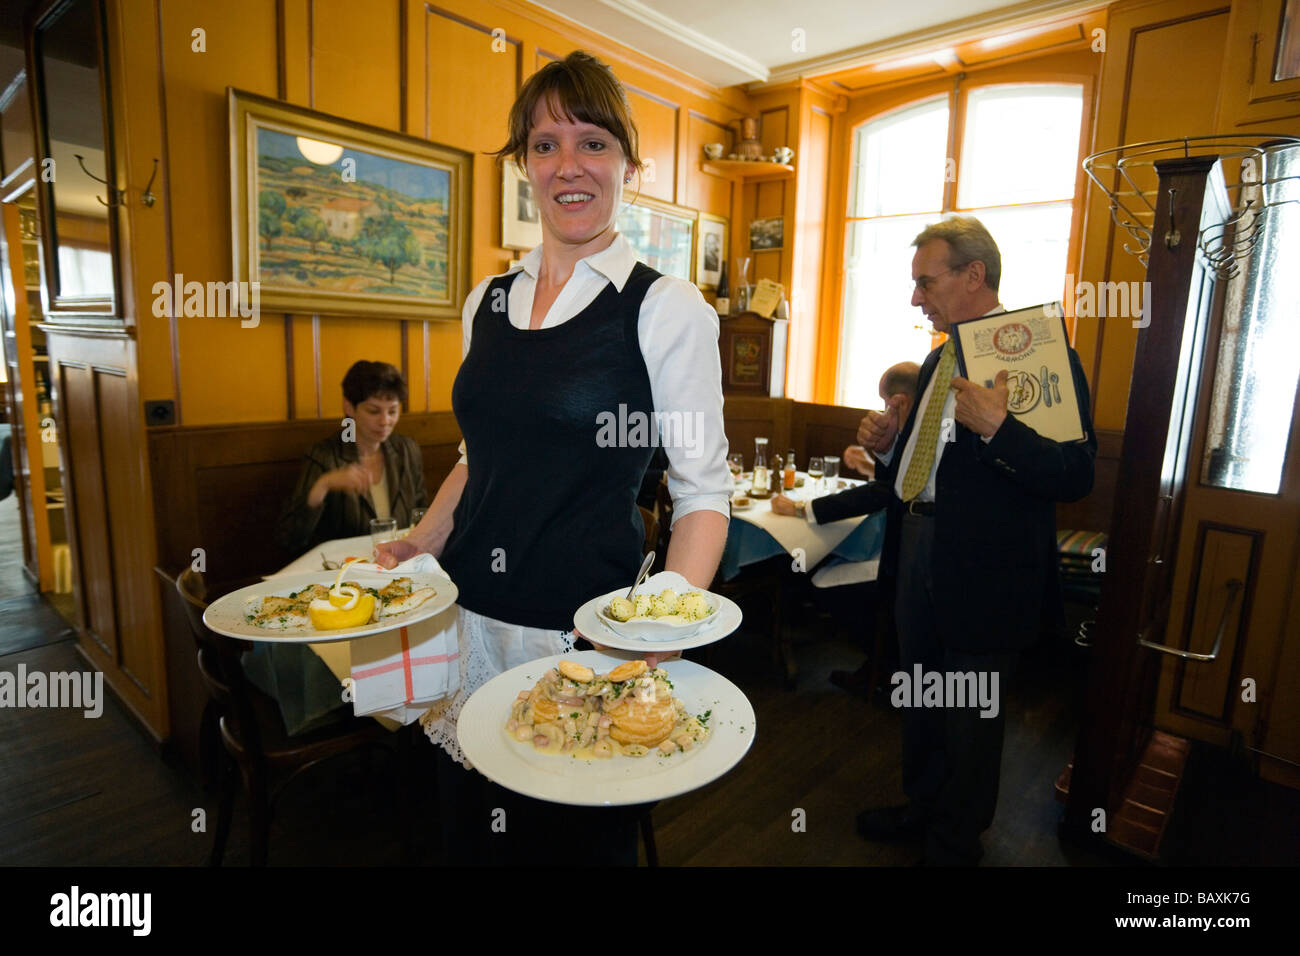 A waitress carrying traditional food, Restaurant Harmonie, Old City of Berne, Berne, Switzerland - Stock Image